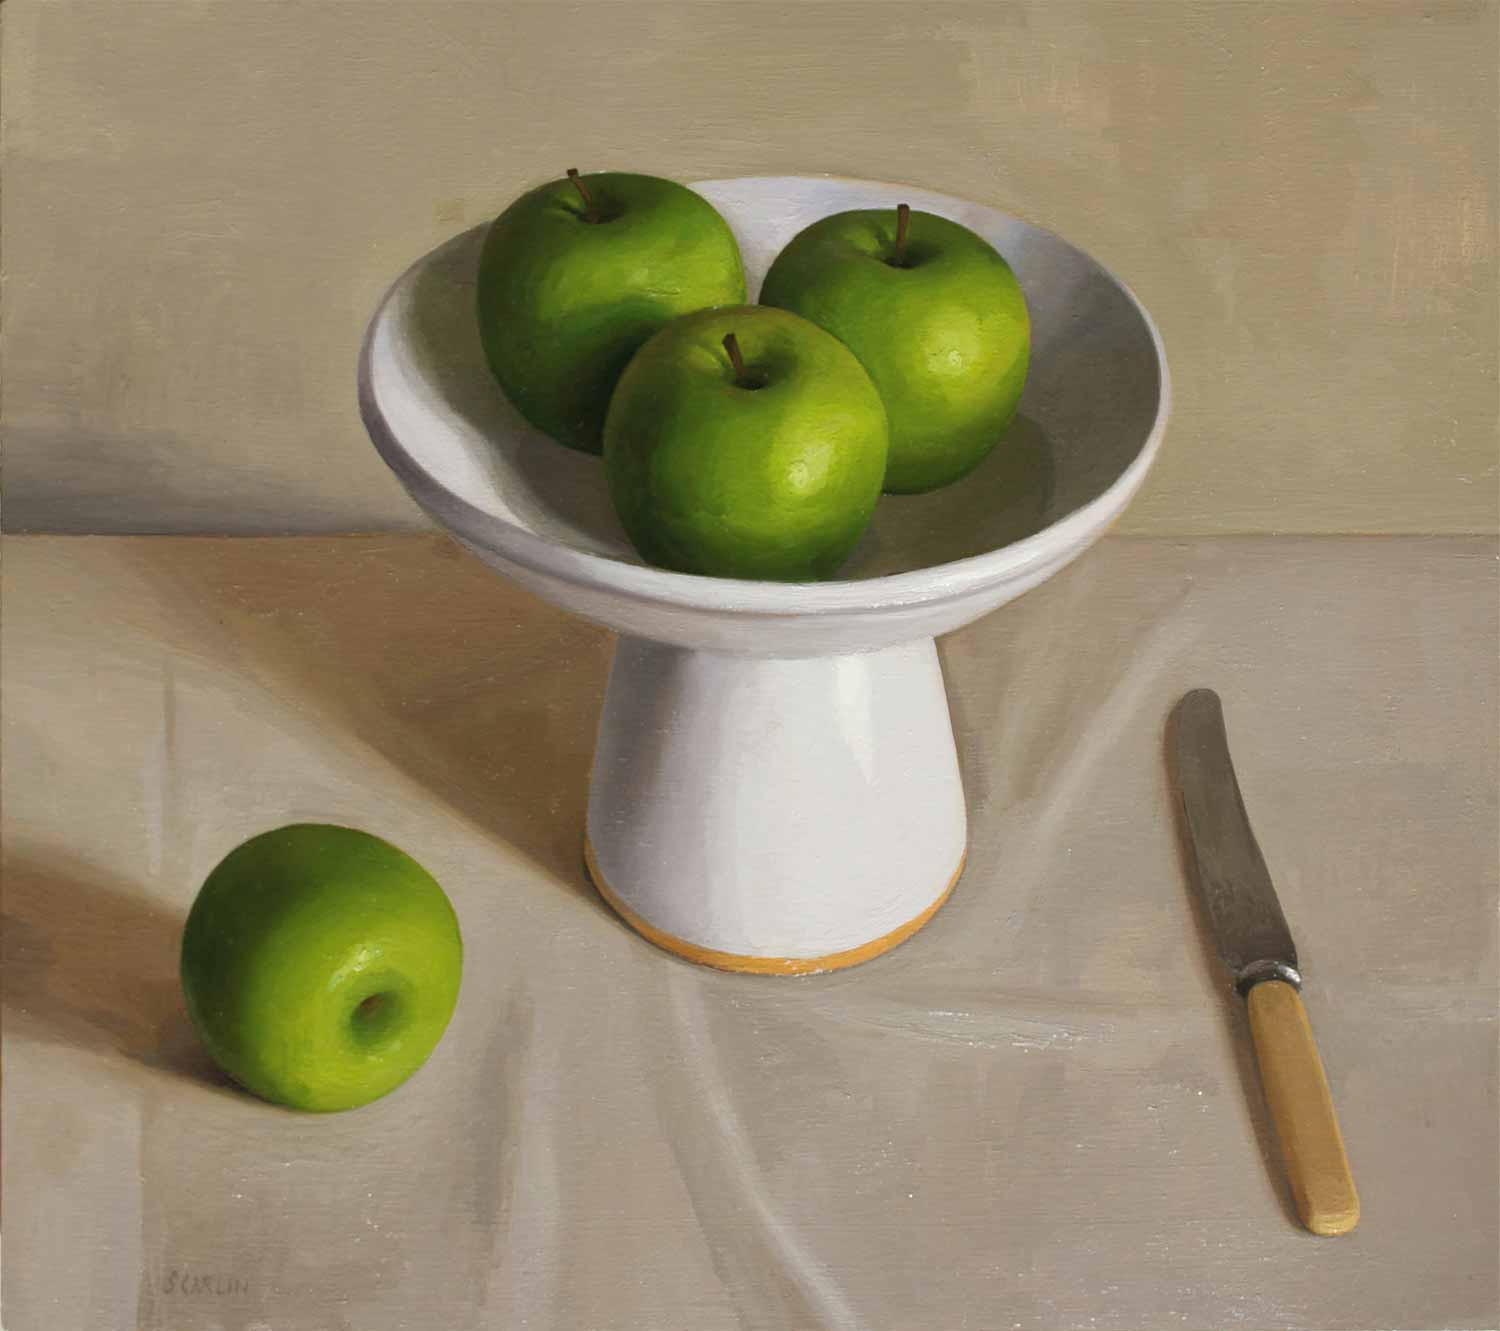 Apples and Knife    Oil on Panel  40 x 45cm  R12 400